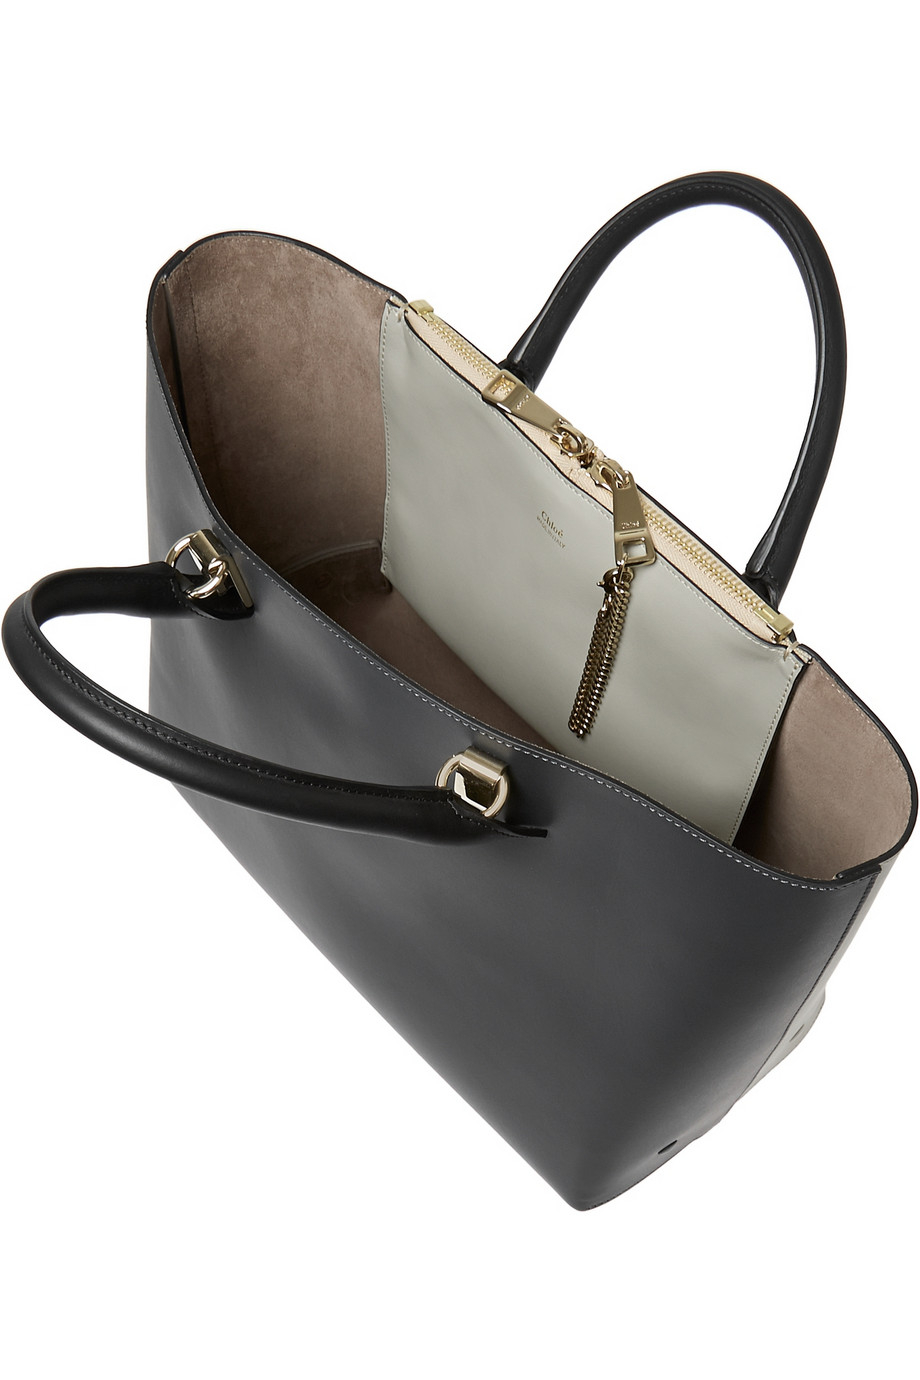 chloe satchel handbag - chloe baylee grey black leather tote, knockoff chloe bags